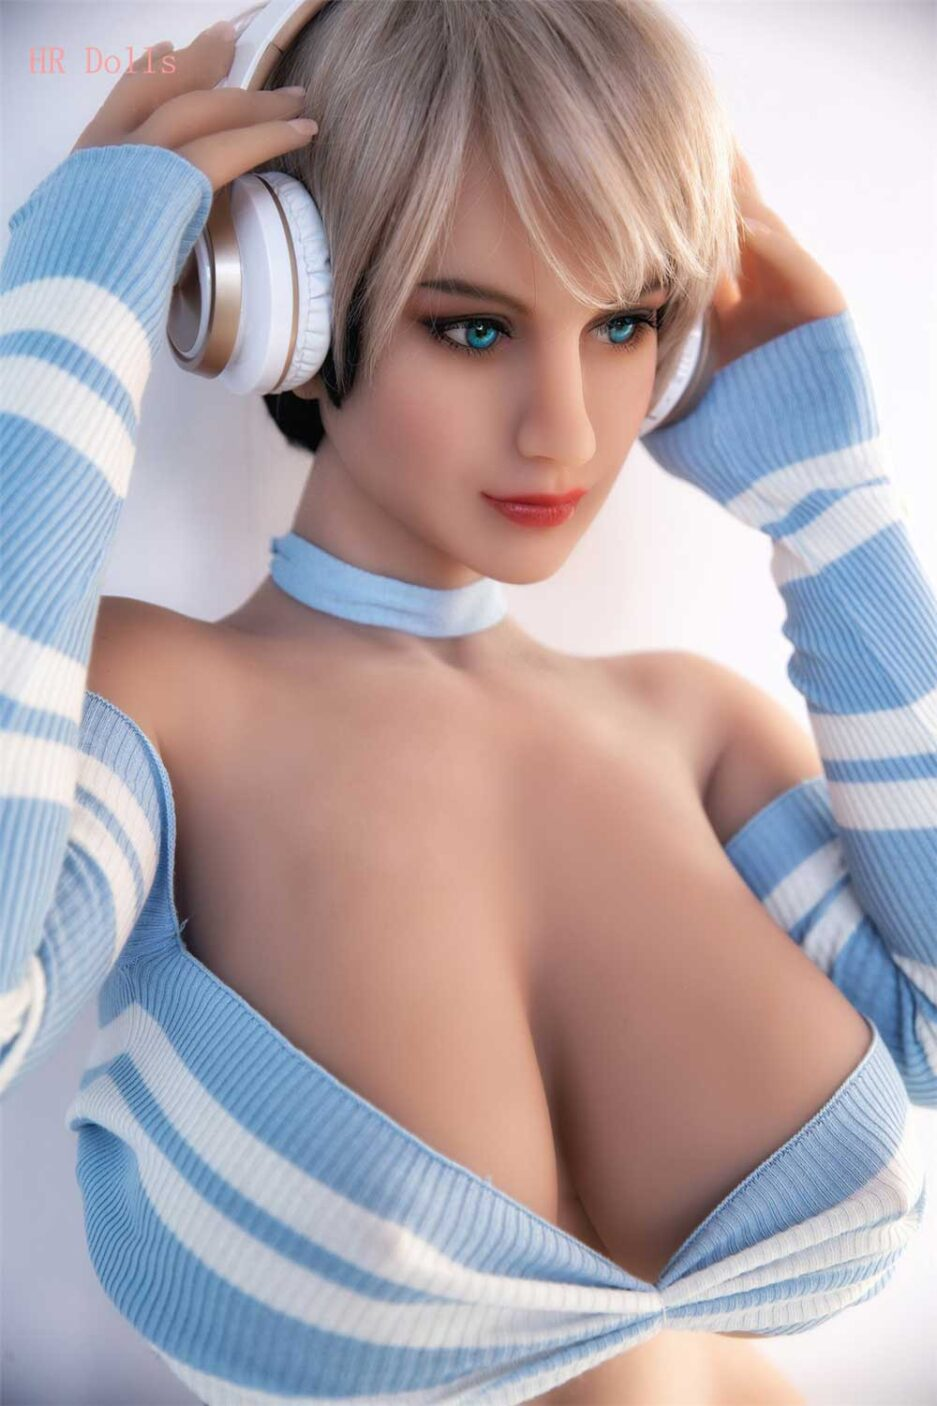 Big breasted sex doll with earphones